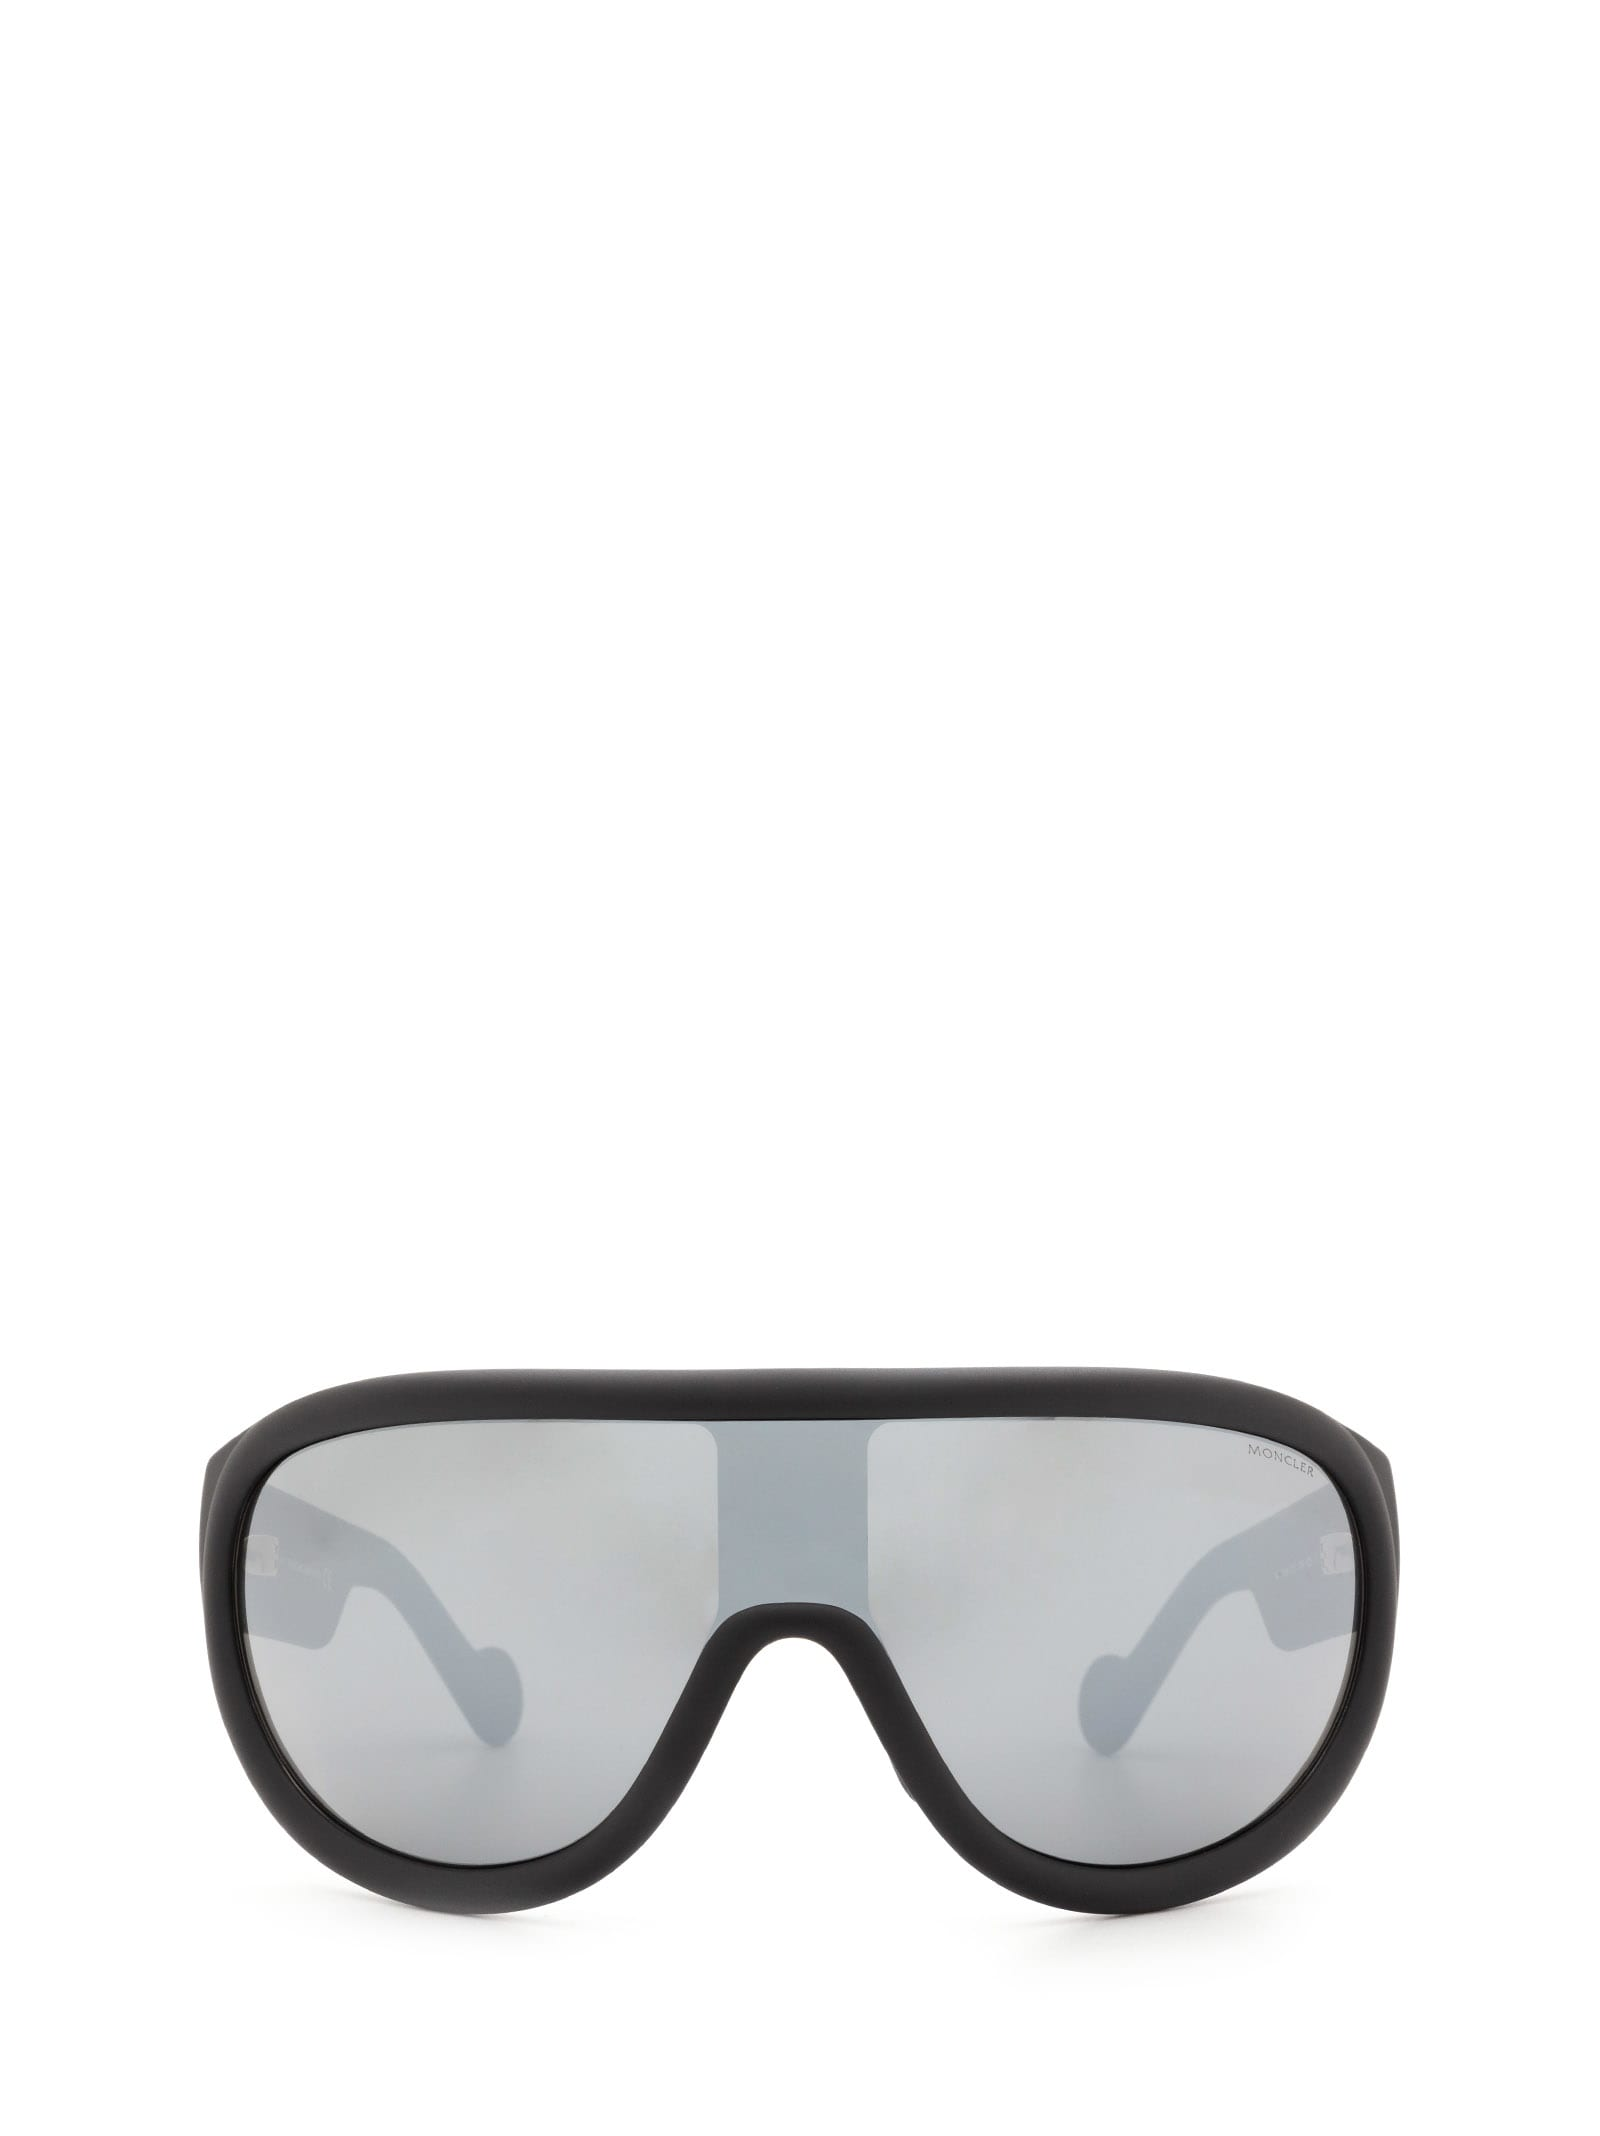 Moncler Sunglasses ML0106 SHINY BLACK SUNGLASSES